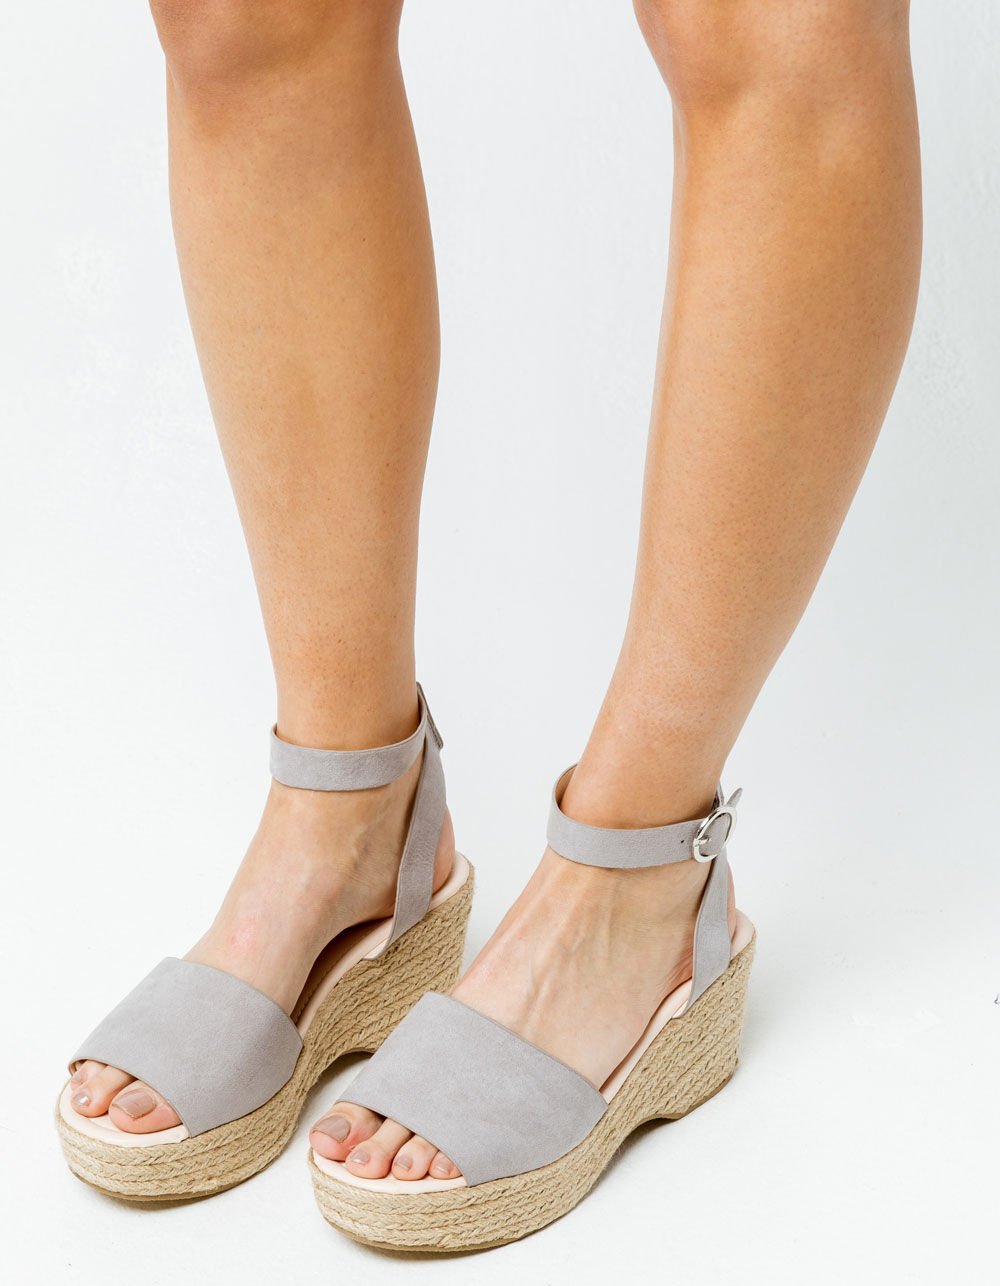 QUPID Ankle Strap Curved Espadrilles Gray Sandals